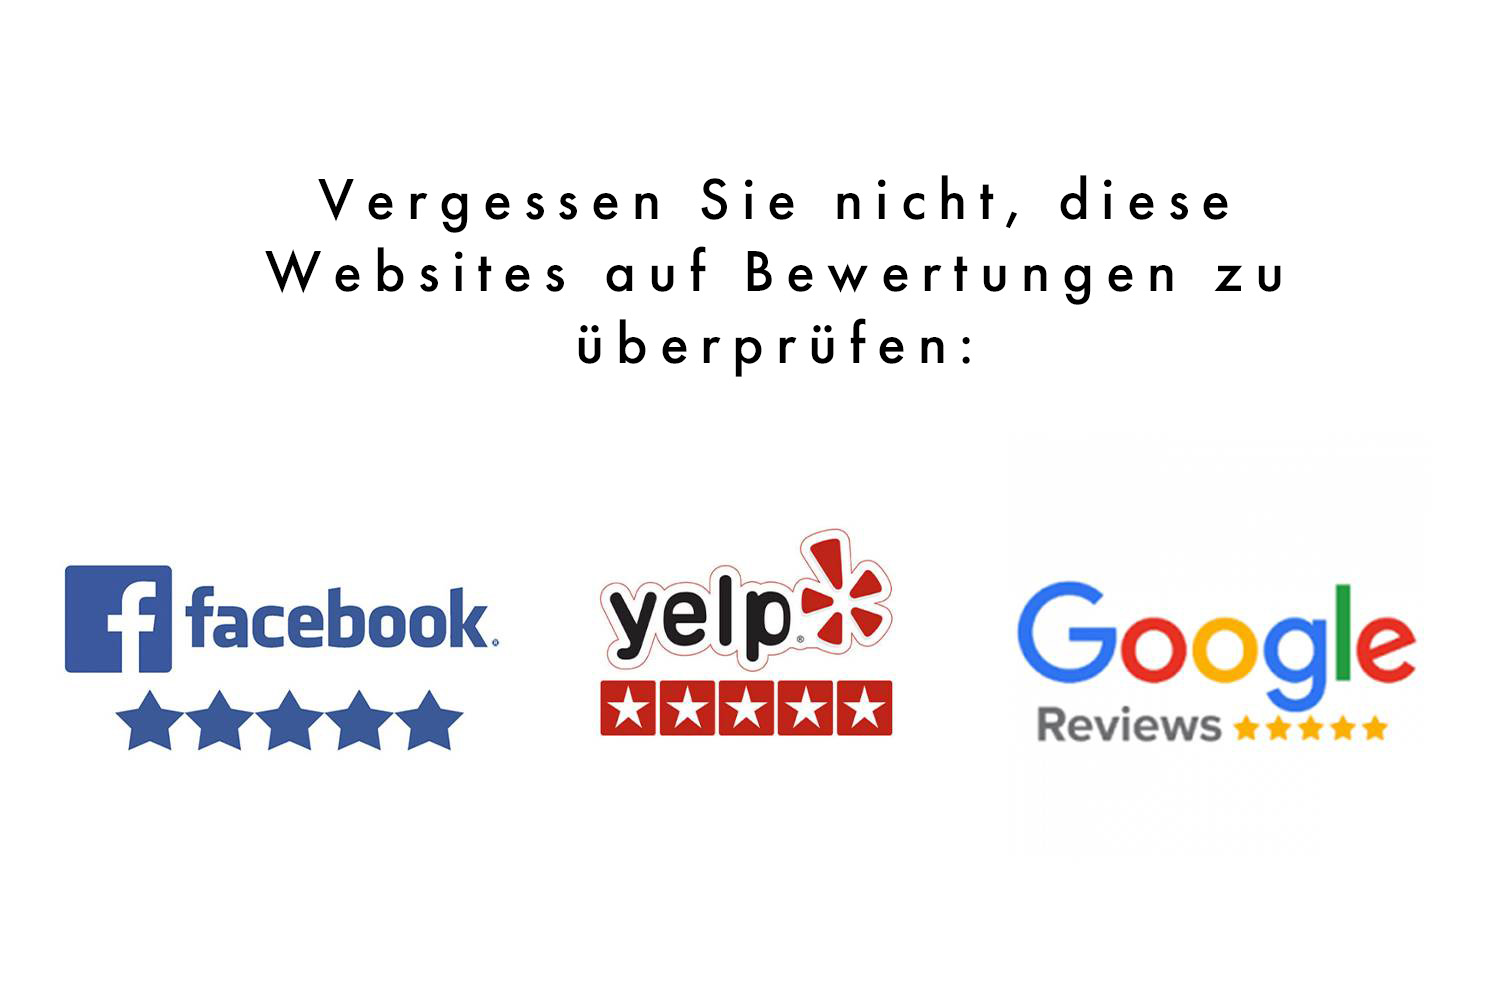 "Darstellung, auf welcher steht: ""don't forget to check on these sites for reviews"" mit Icons von Facebook, Yelp und Google Reviews"